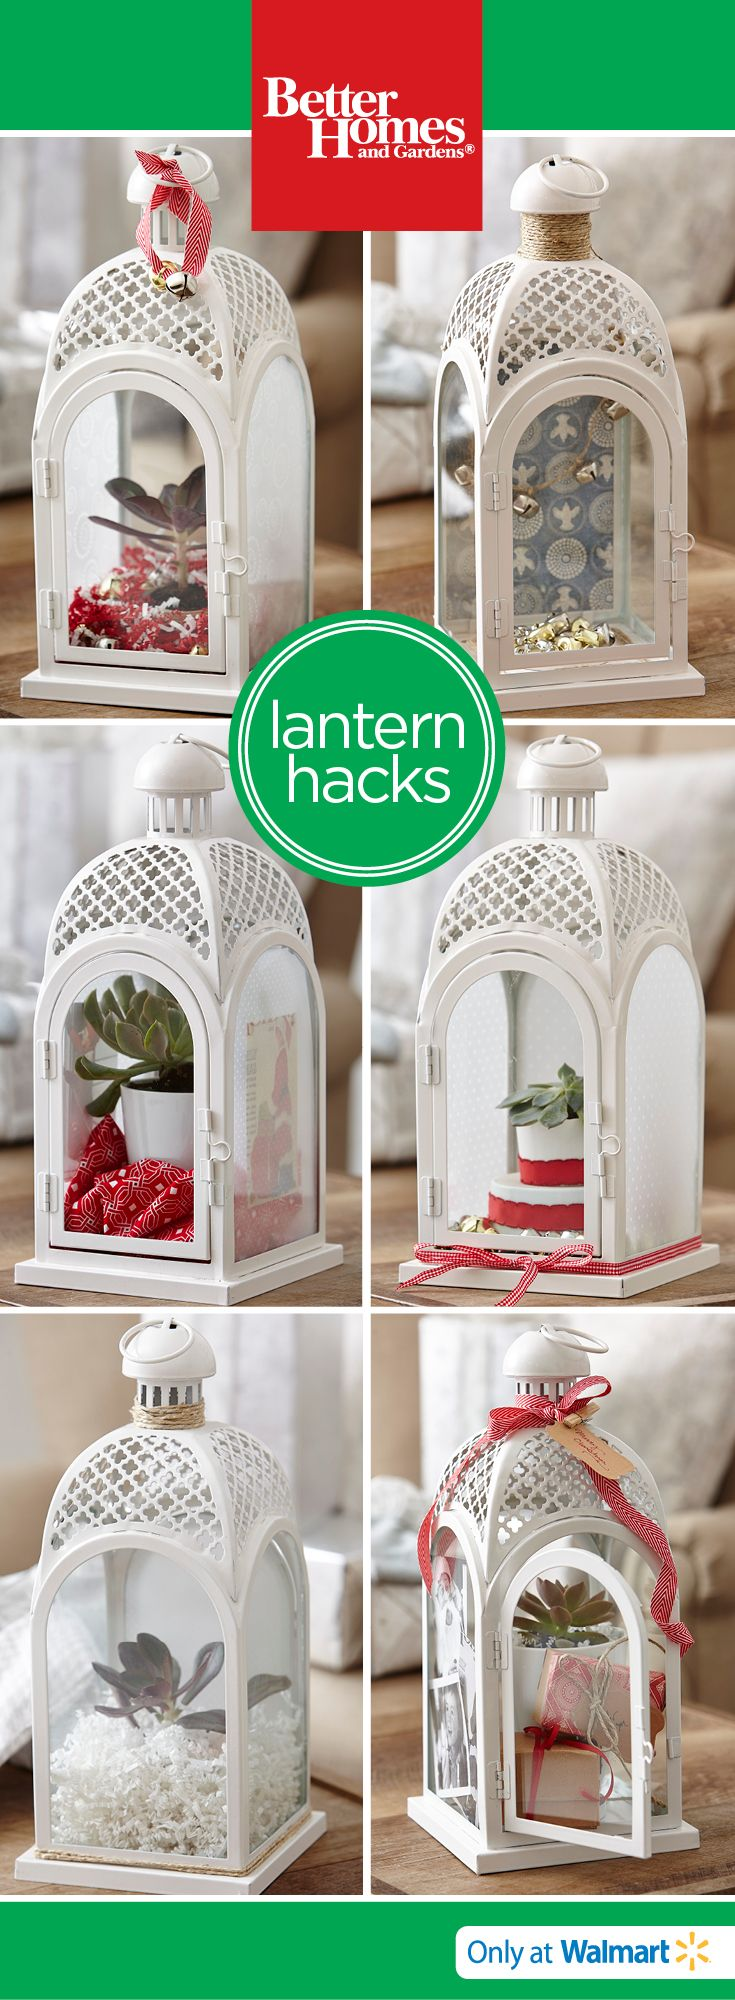 Fill a lantern with little gifts or decorate it as a centerpiece!